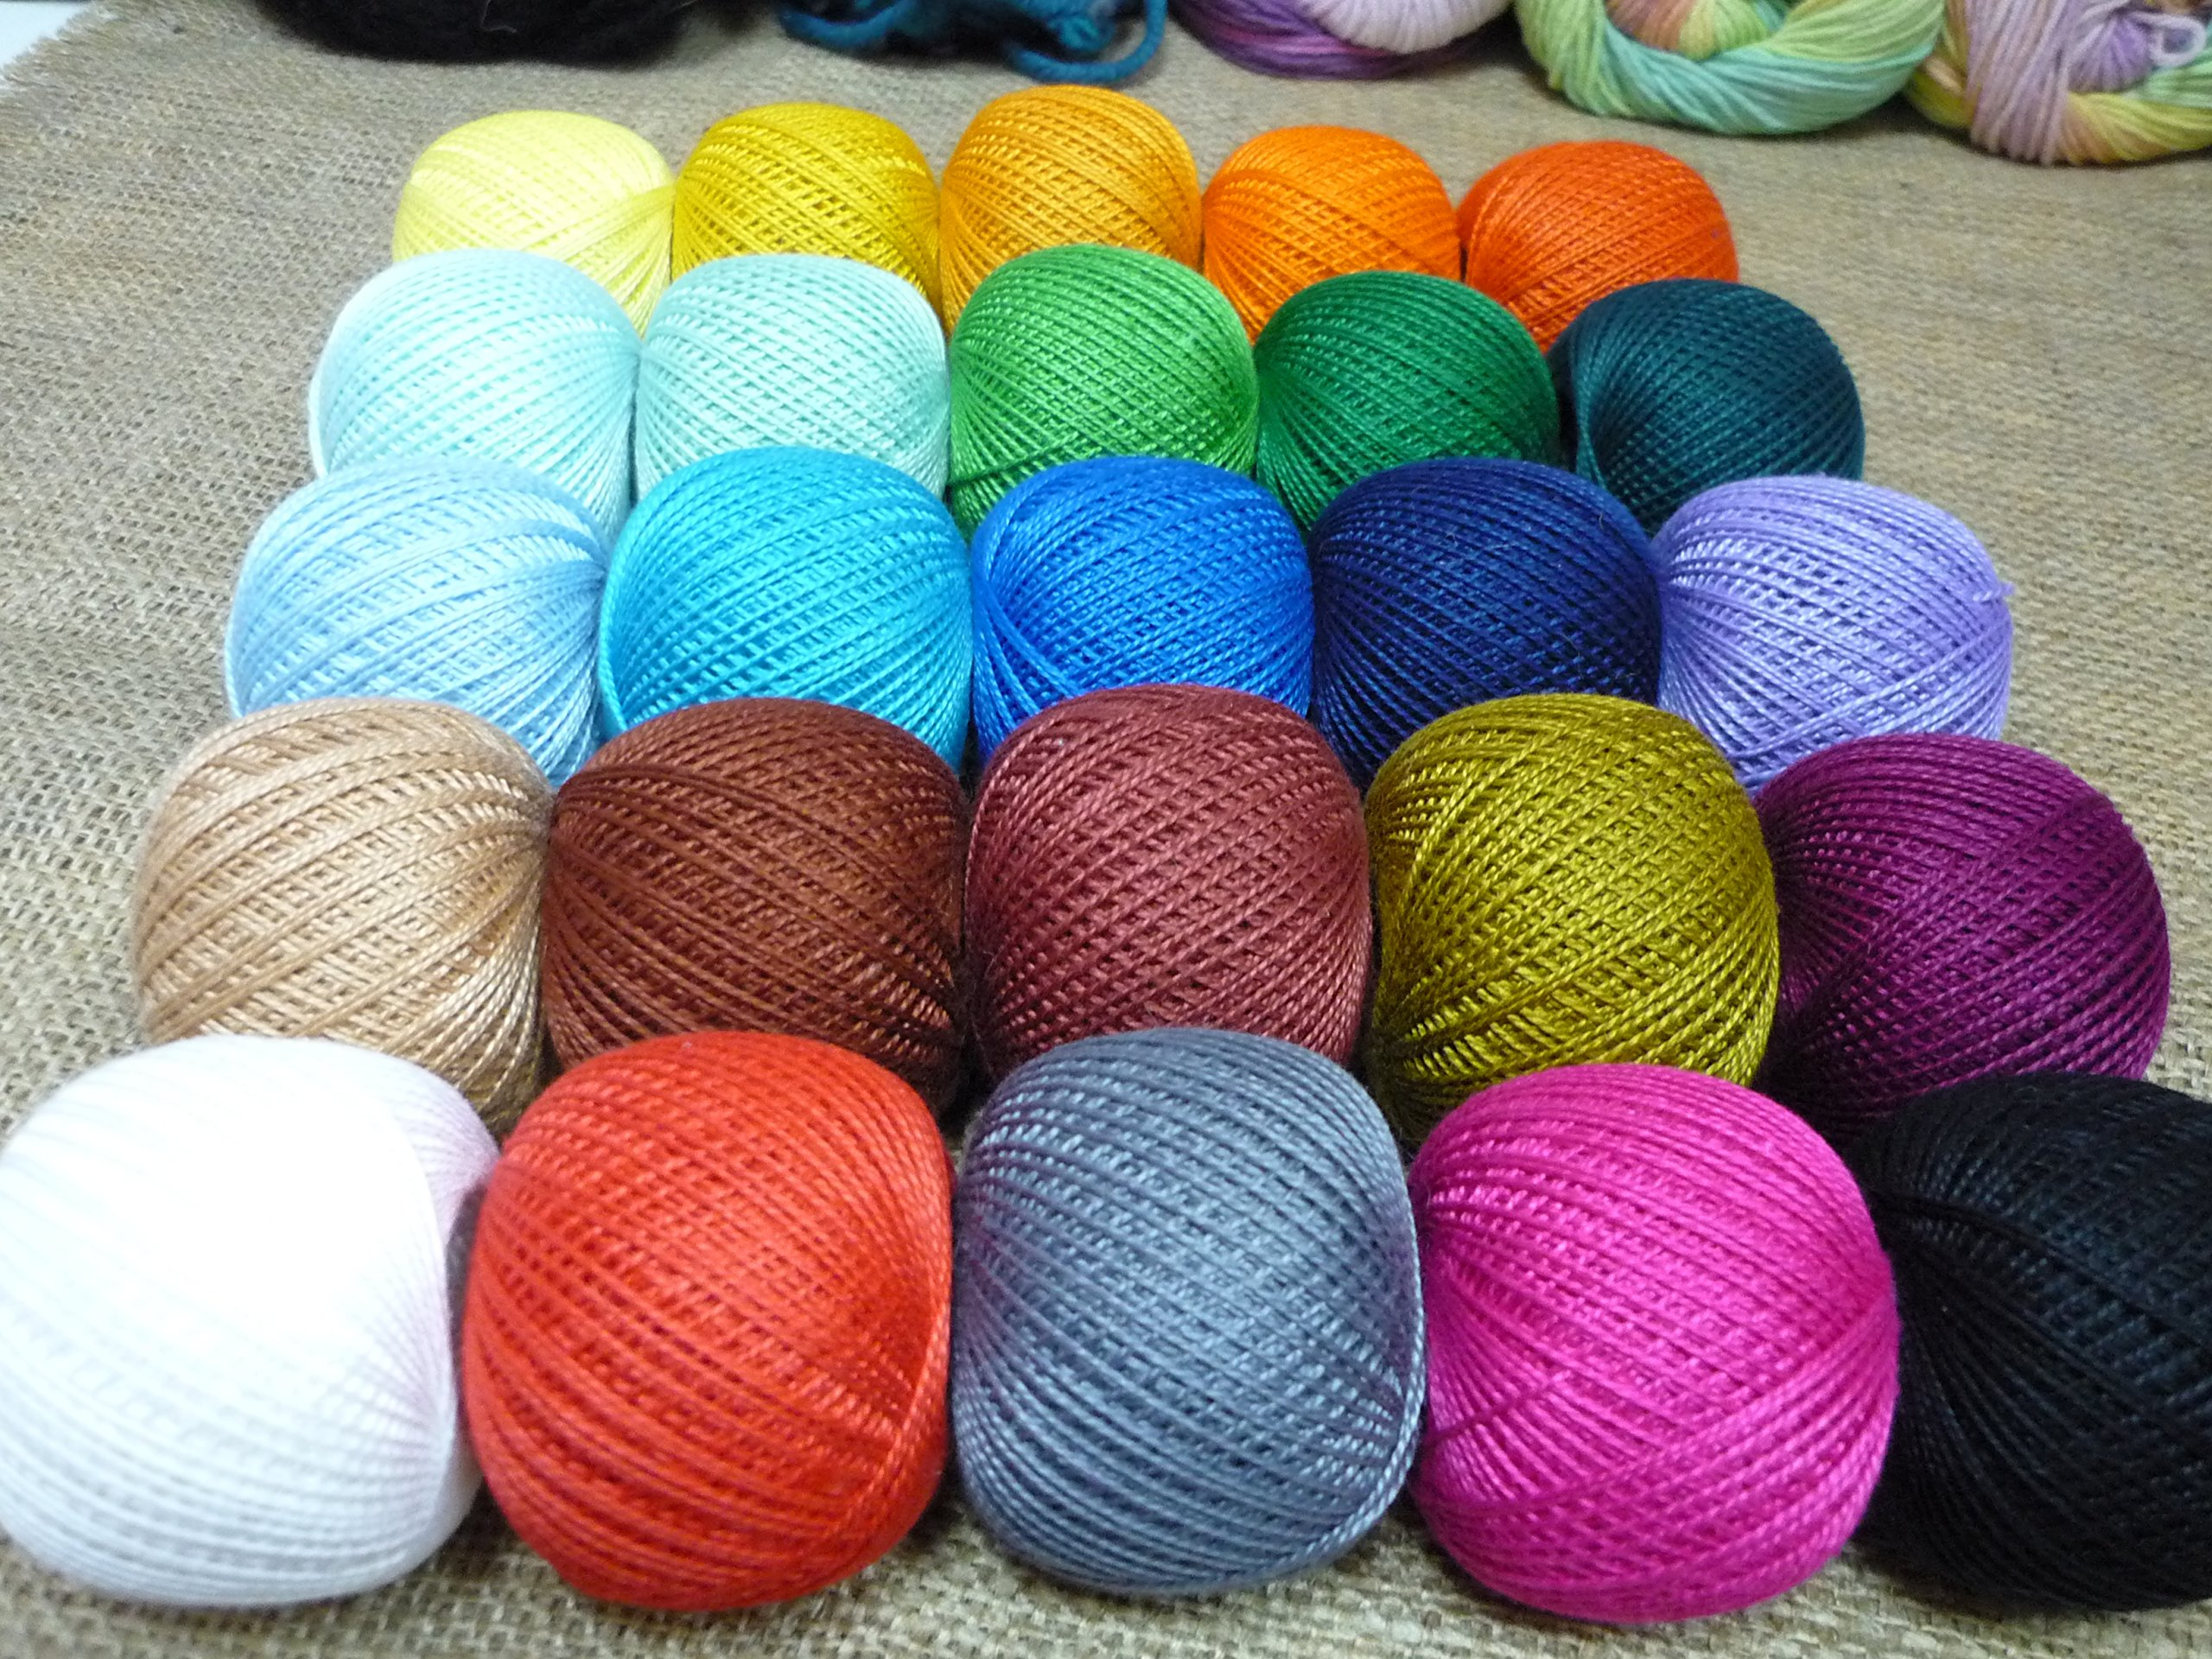 100% Mercerized Cotton Yarn Hand Knitting Lace Crochet Thread Assorted Yarn Skeins Colors Huge Mixed Lot of 25 skn 625gr 4100yds Multicolor